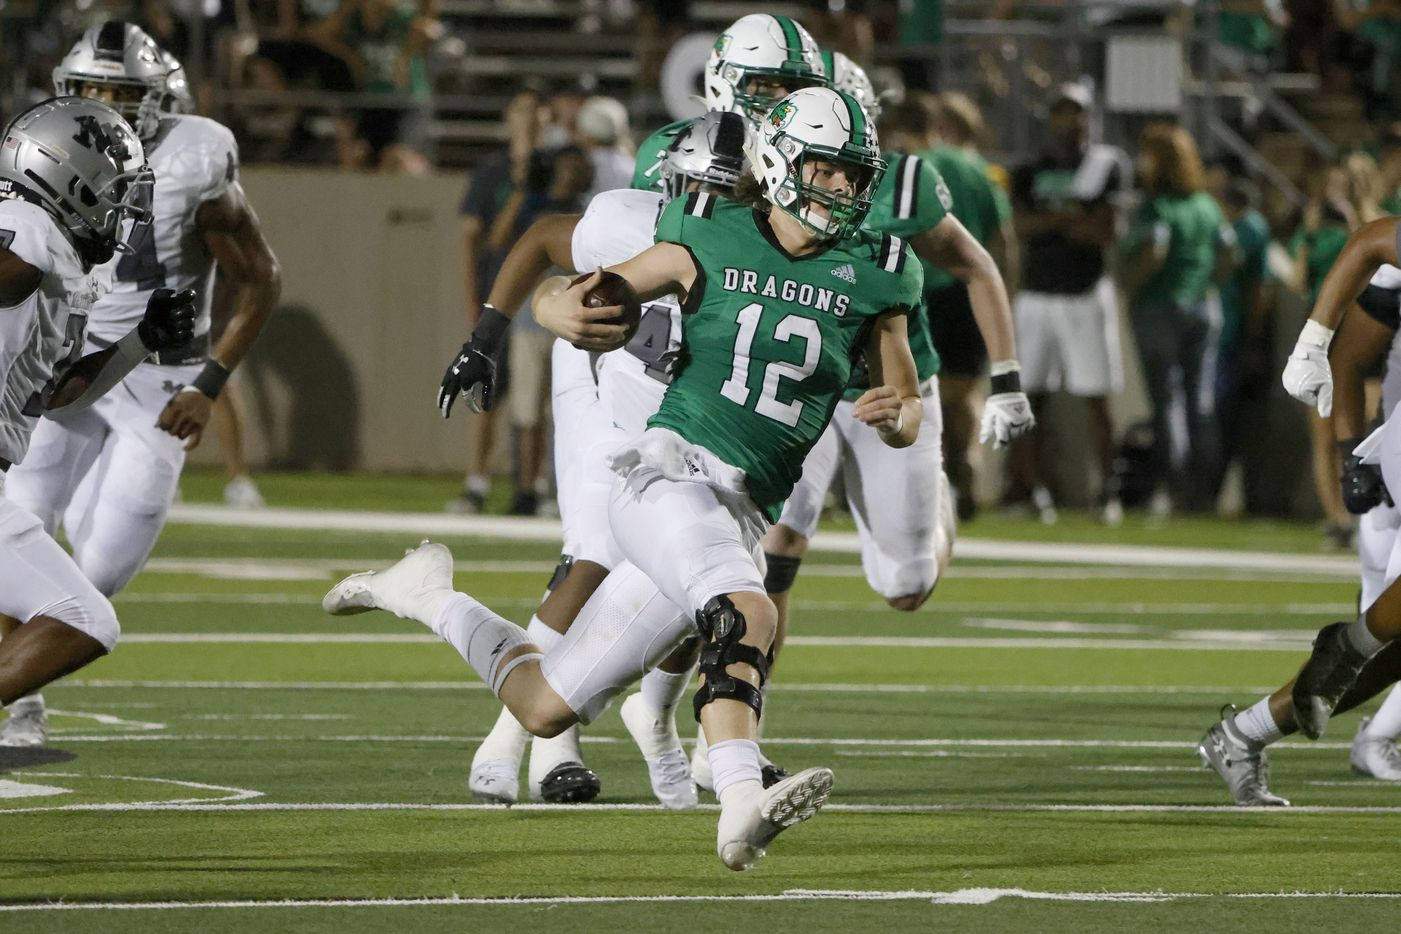 Southlake Carroll quarterback Kaden Anderson (12) scrambles for yards against Arlington Martin during a high school football game in Southlake, Texas on Friday, Sept. 17, 2021. (Michael Ainsworth/Special Contributor)